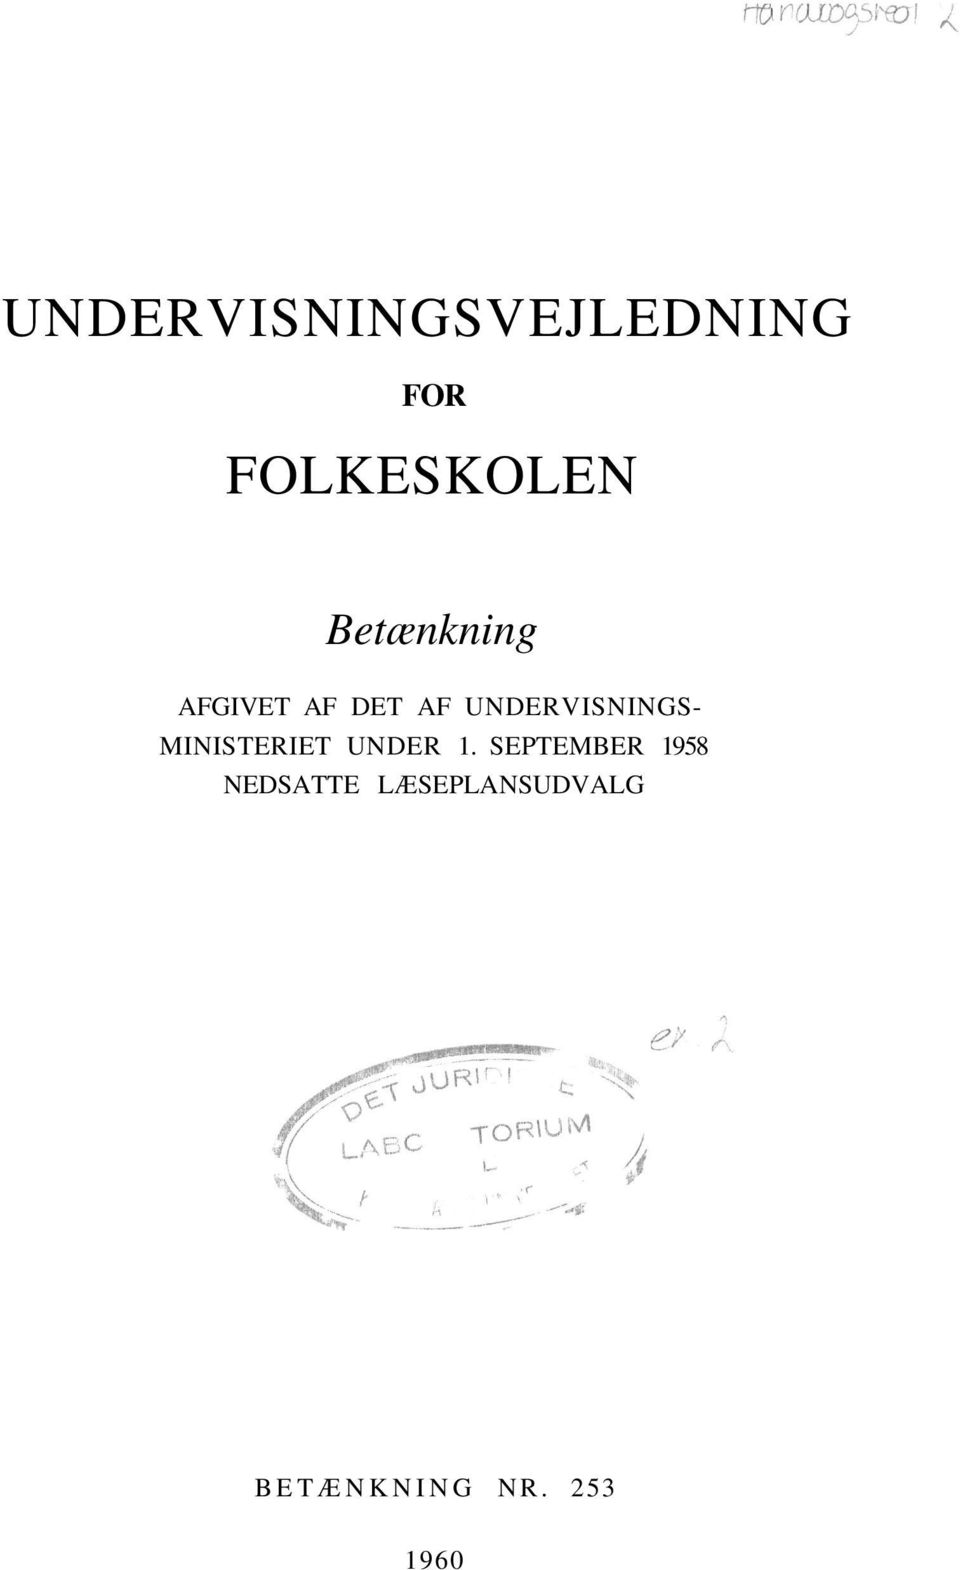 UNDERVISNINGS- MINISTERIET UNDER 1.